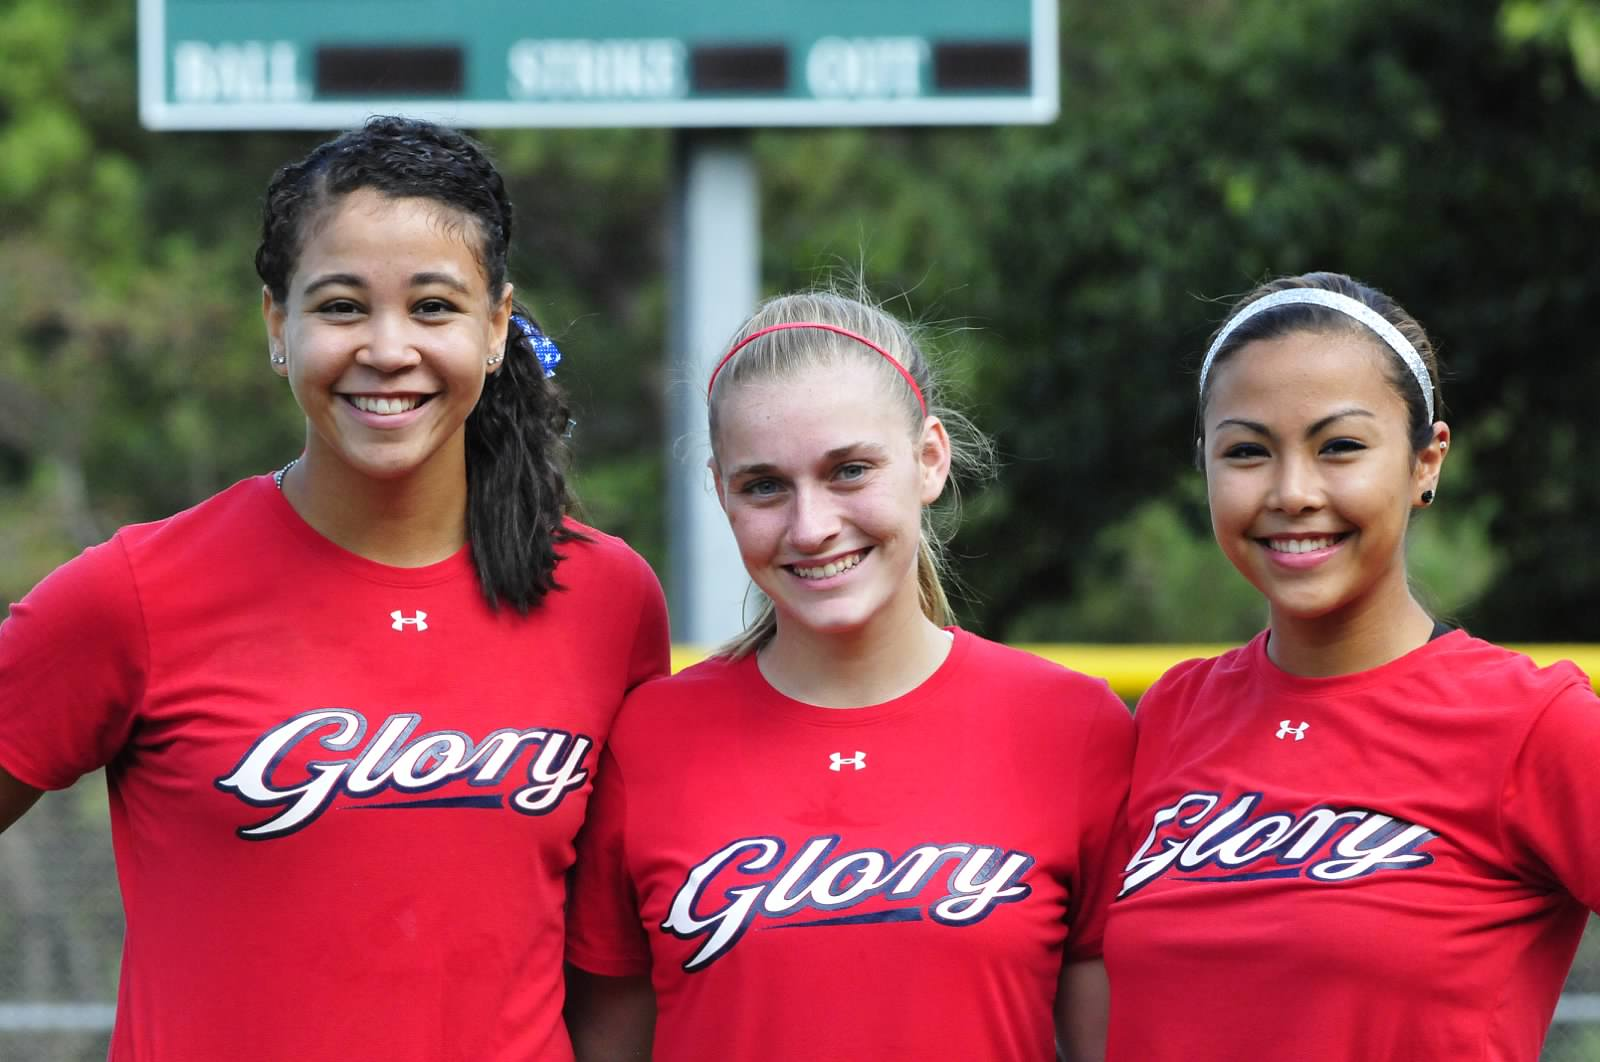 Pity, Northern virginia girls softball